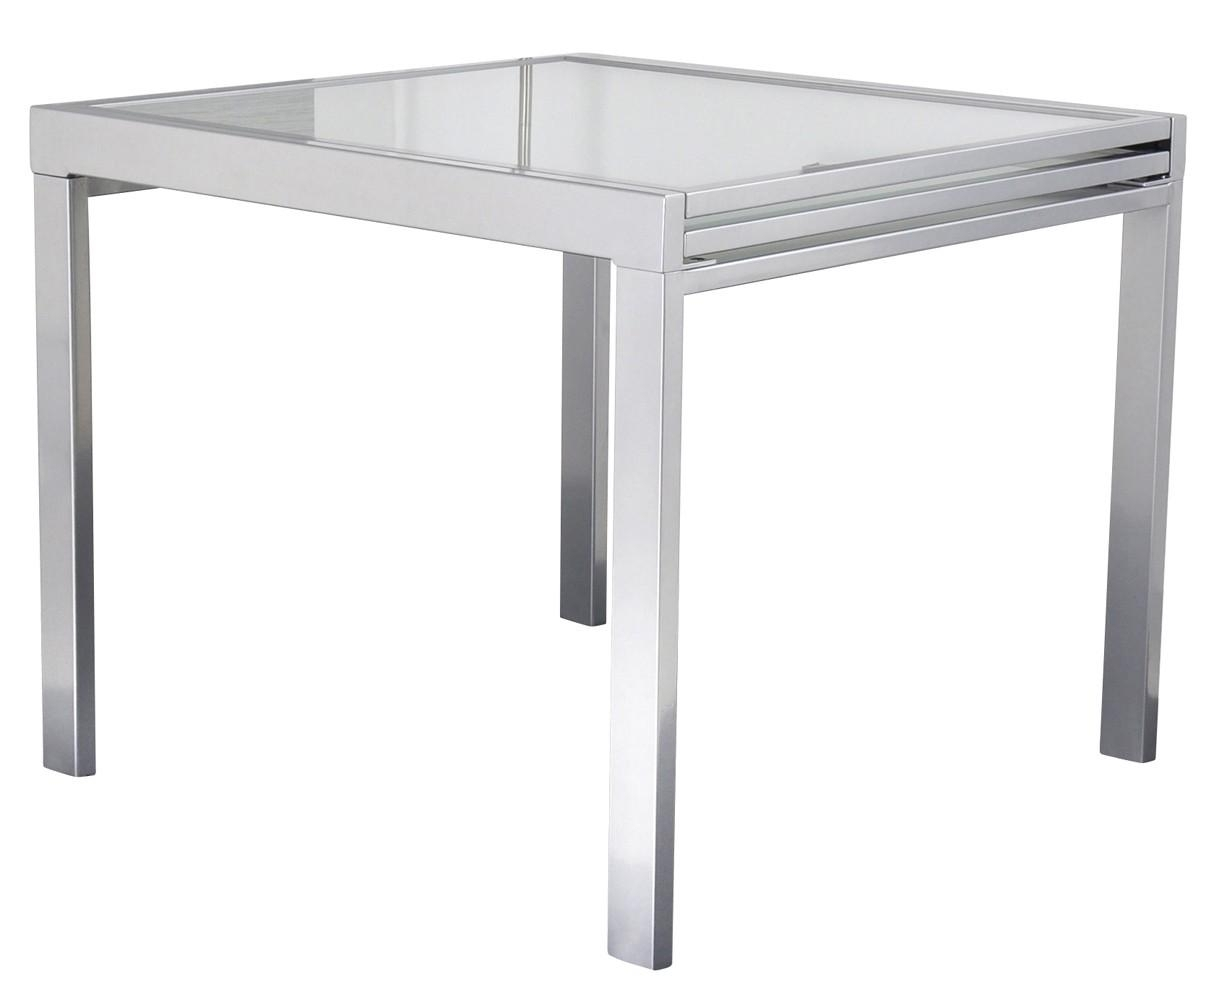 Les tendances table carr e extensible grise Table a manger carre extensible